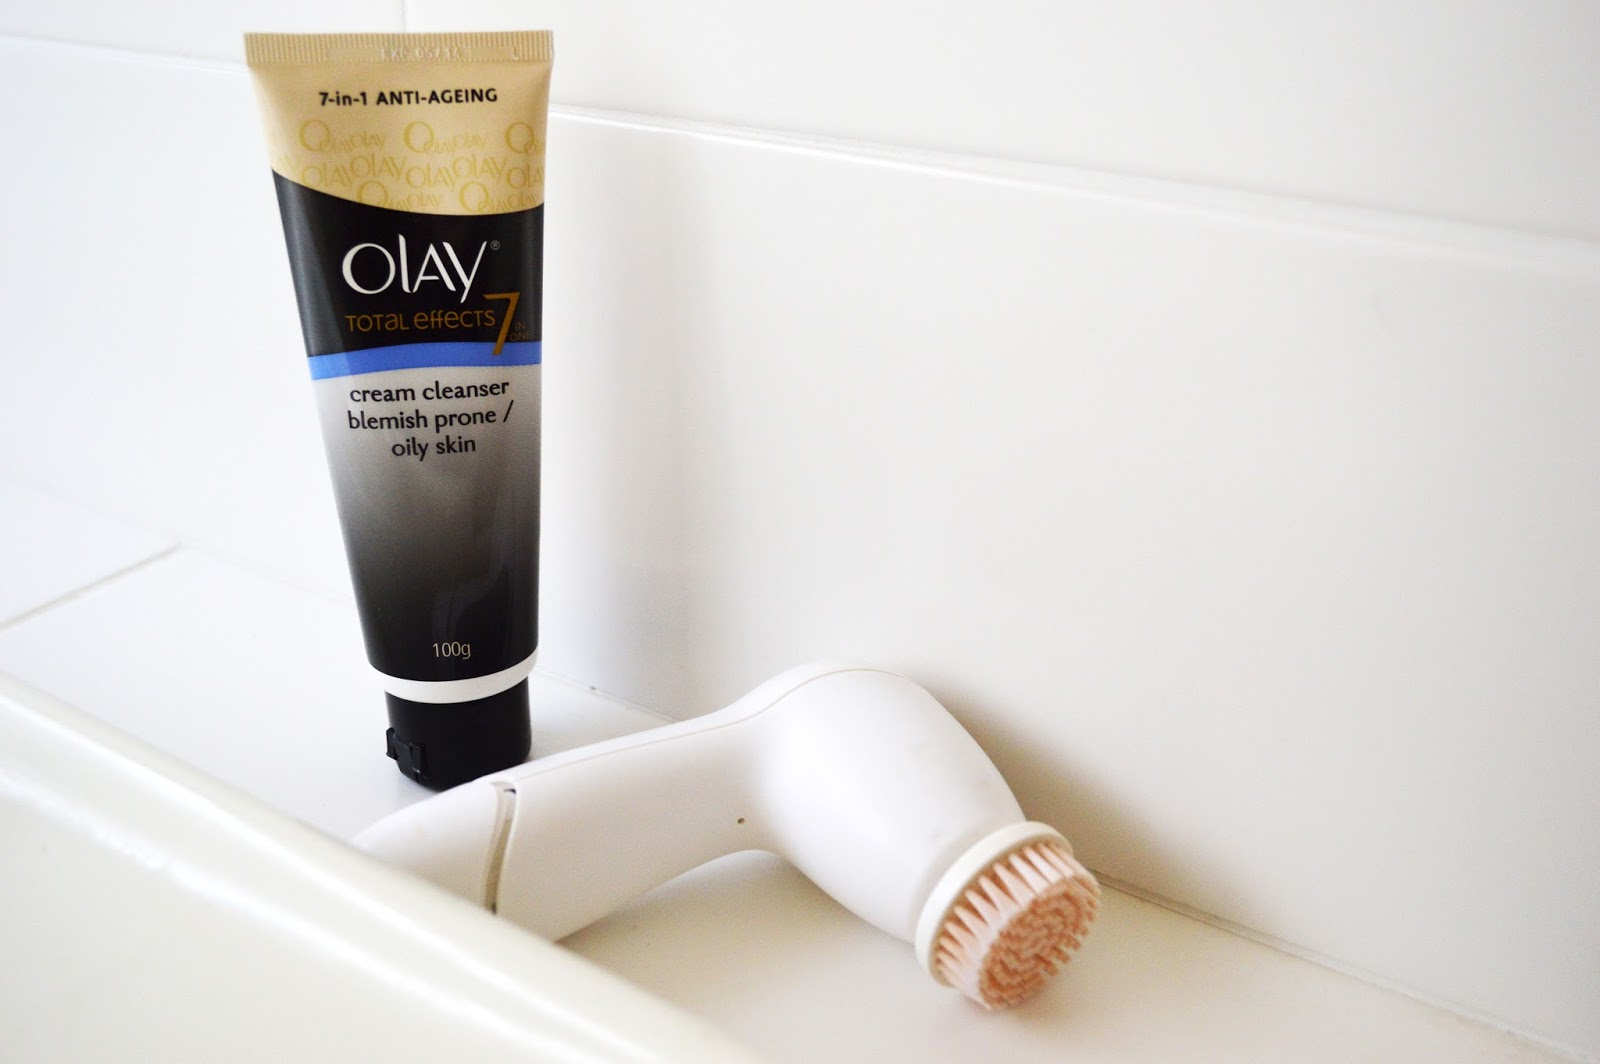 Olay Regenerist Cleansing System